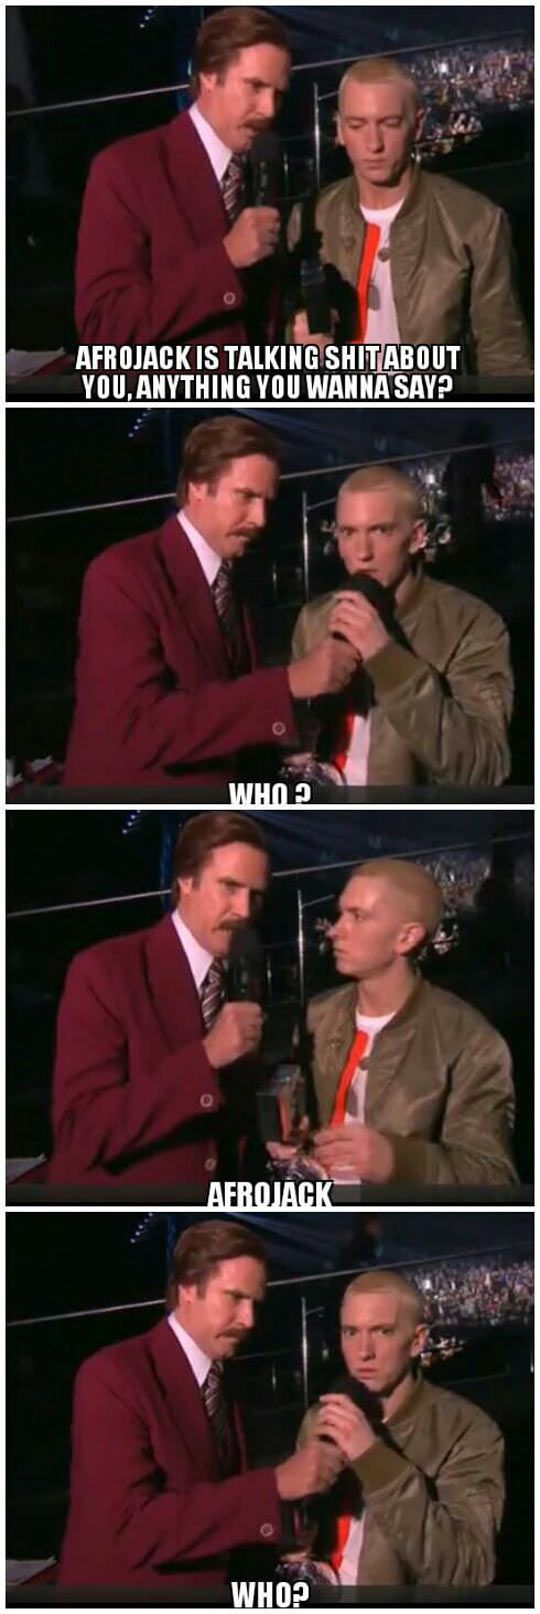 Eminem at his best // funny pictures - funny photos - funny images - funny pics - funny quotes - #lol #humor #funnypictures